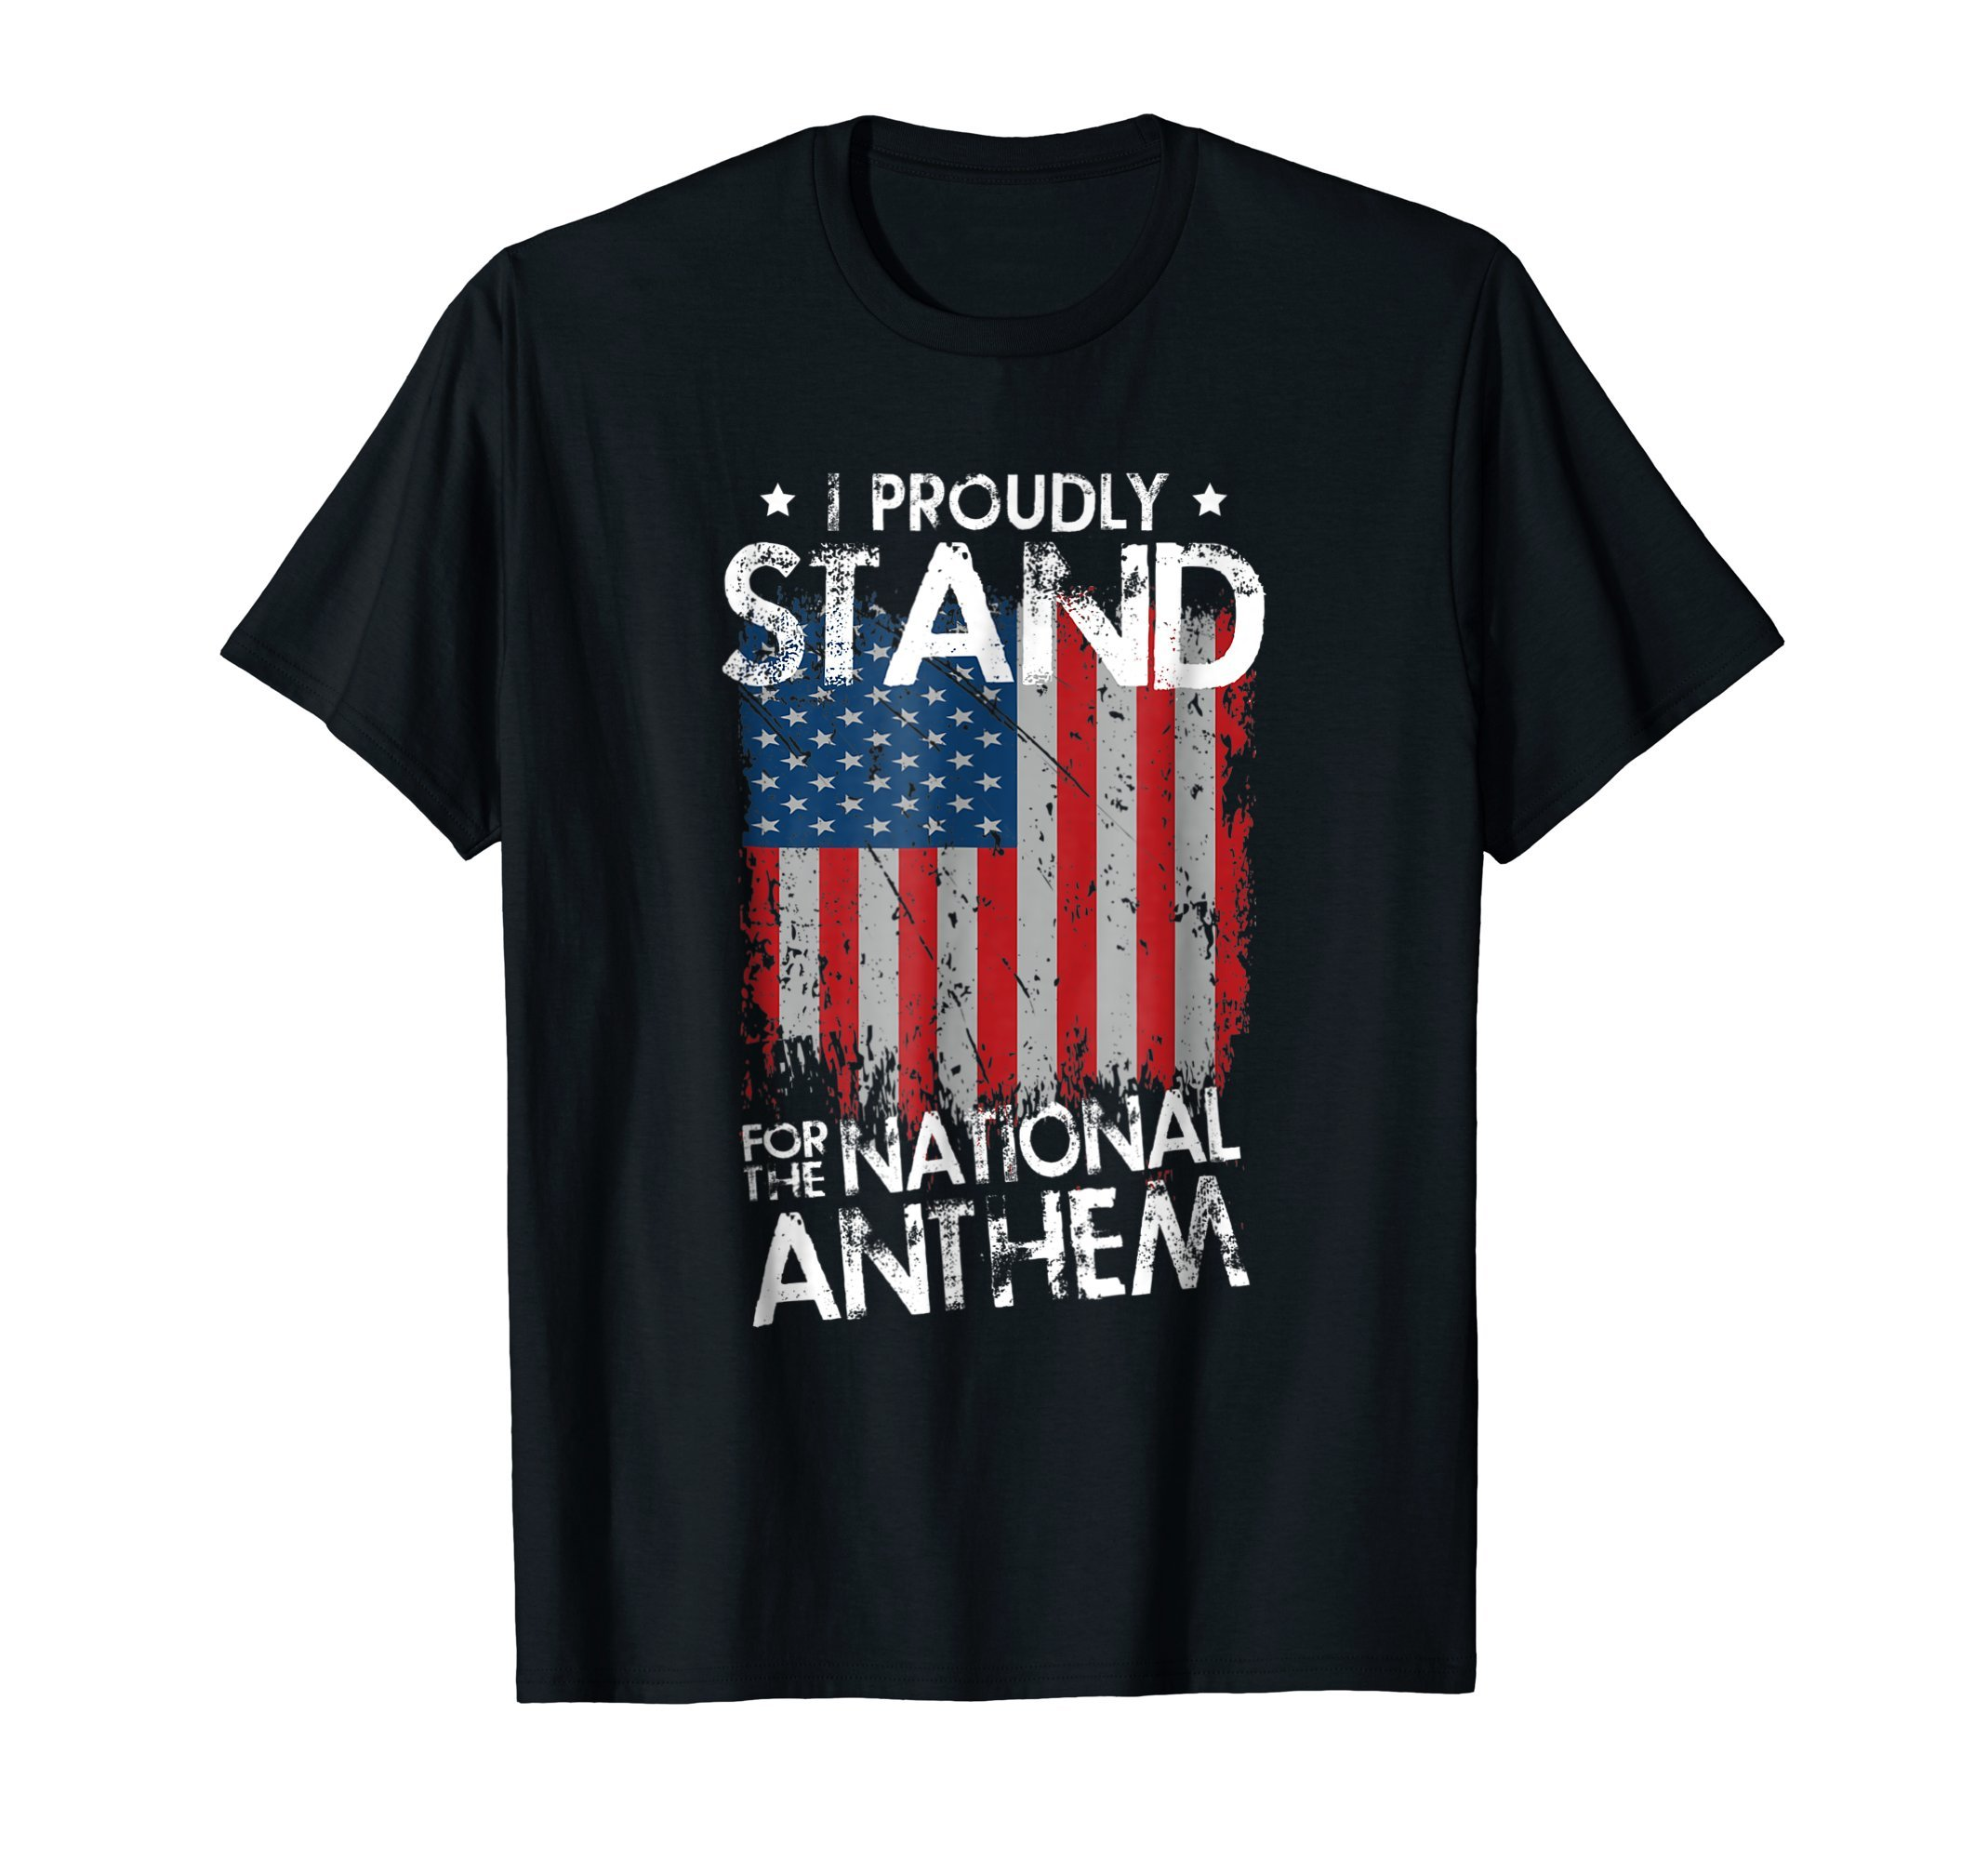 I Proudly Stand With The National Anthem T-Shirt